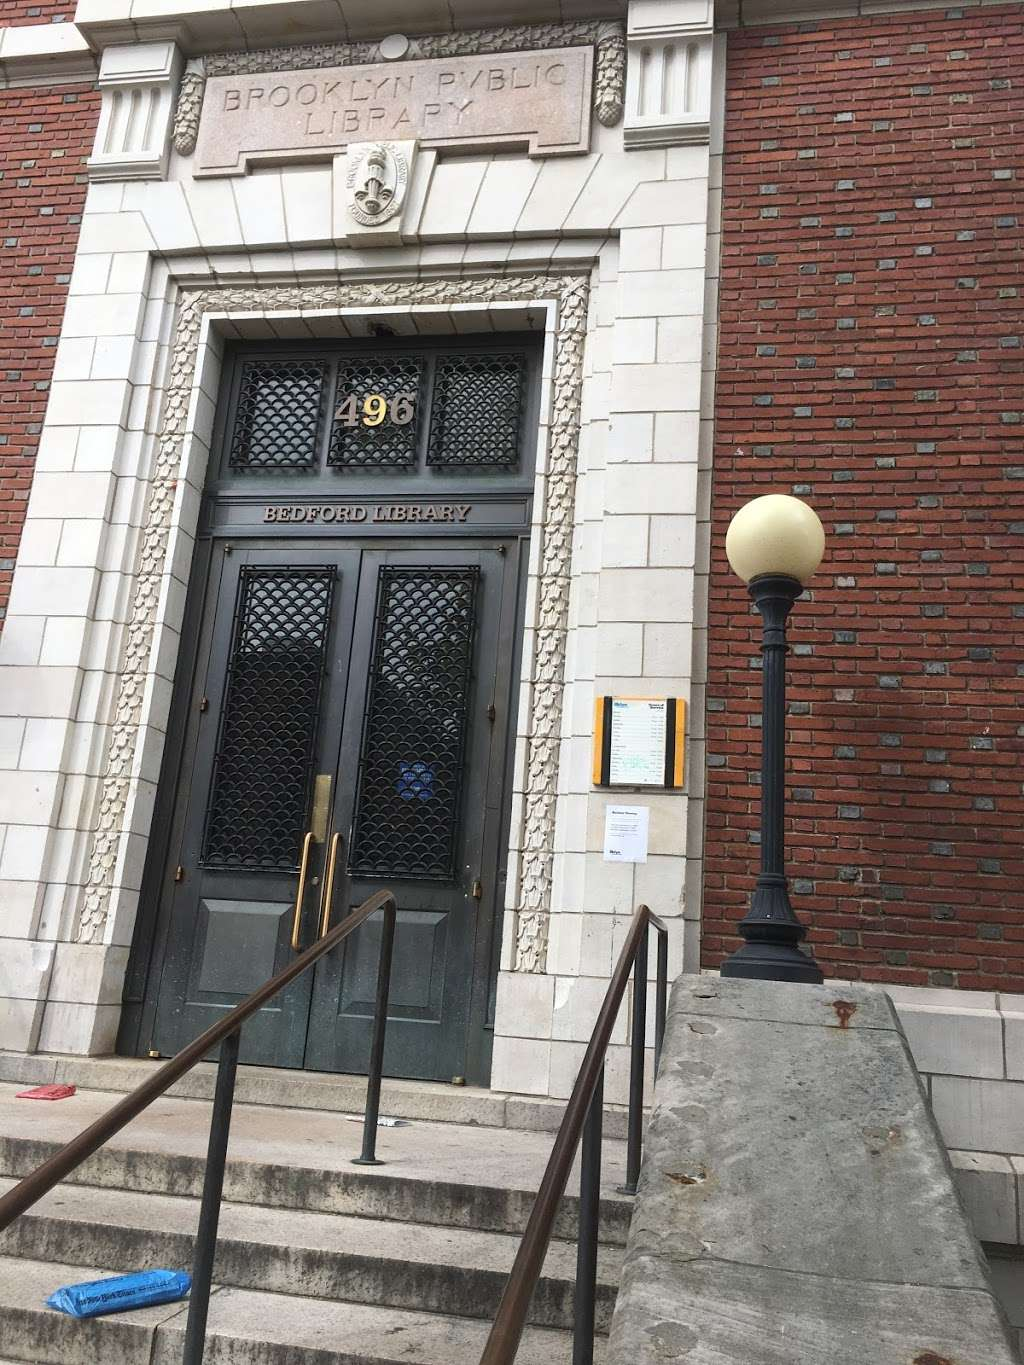 Bedford Branch Library - library  | Photo 2 of 4 | Address: 496 Franklin Ave, Brooklyn, NY 11238, USA | Phone: (718) 623-0012